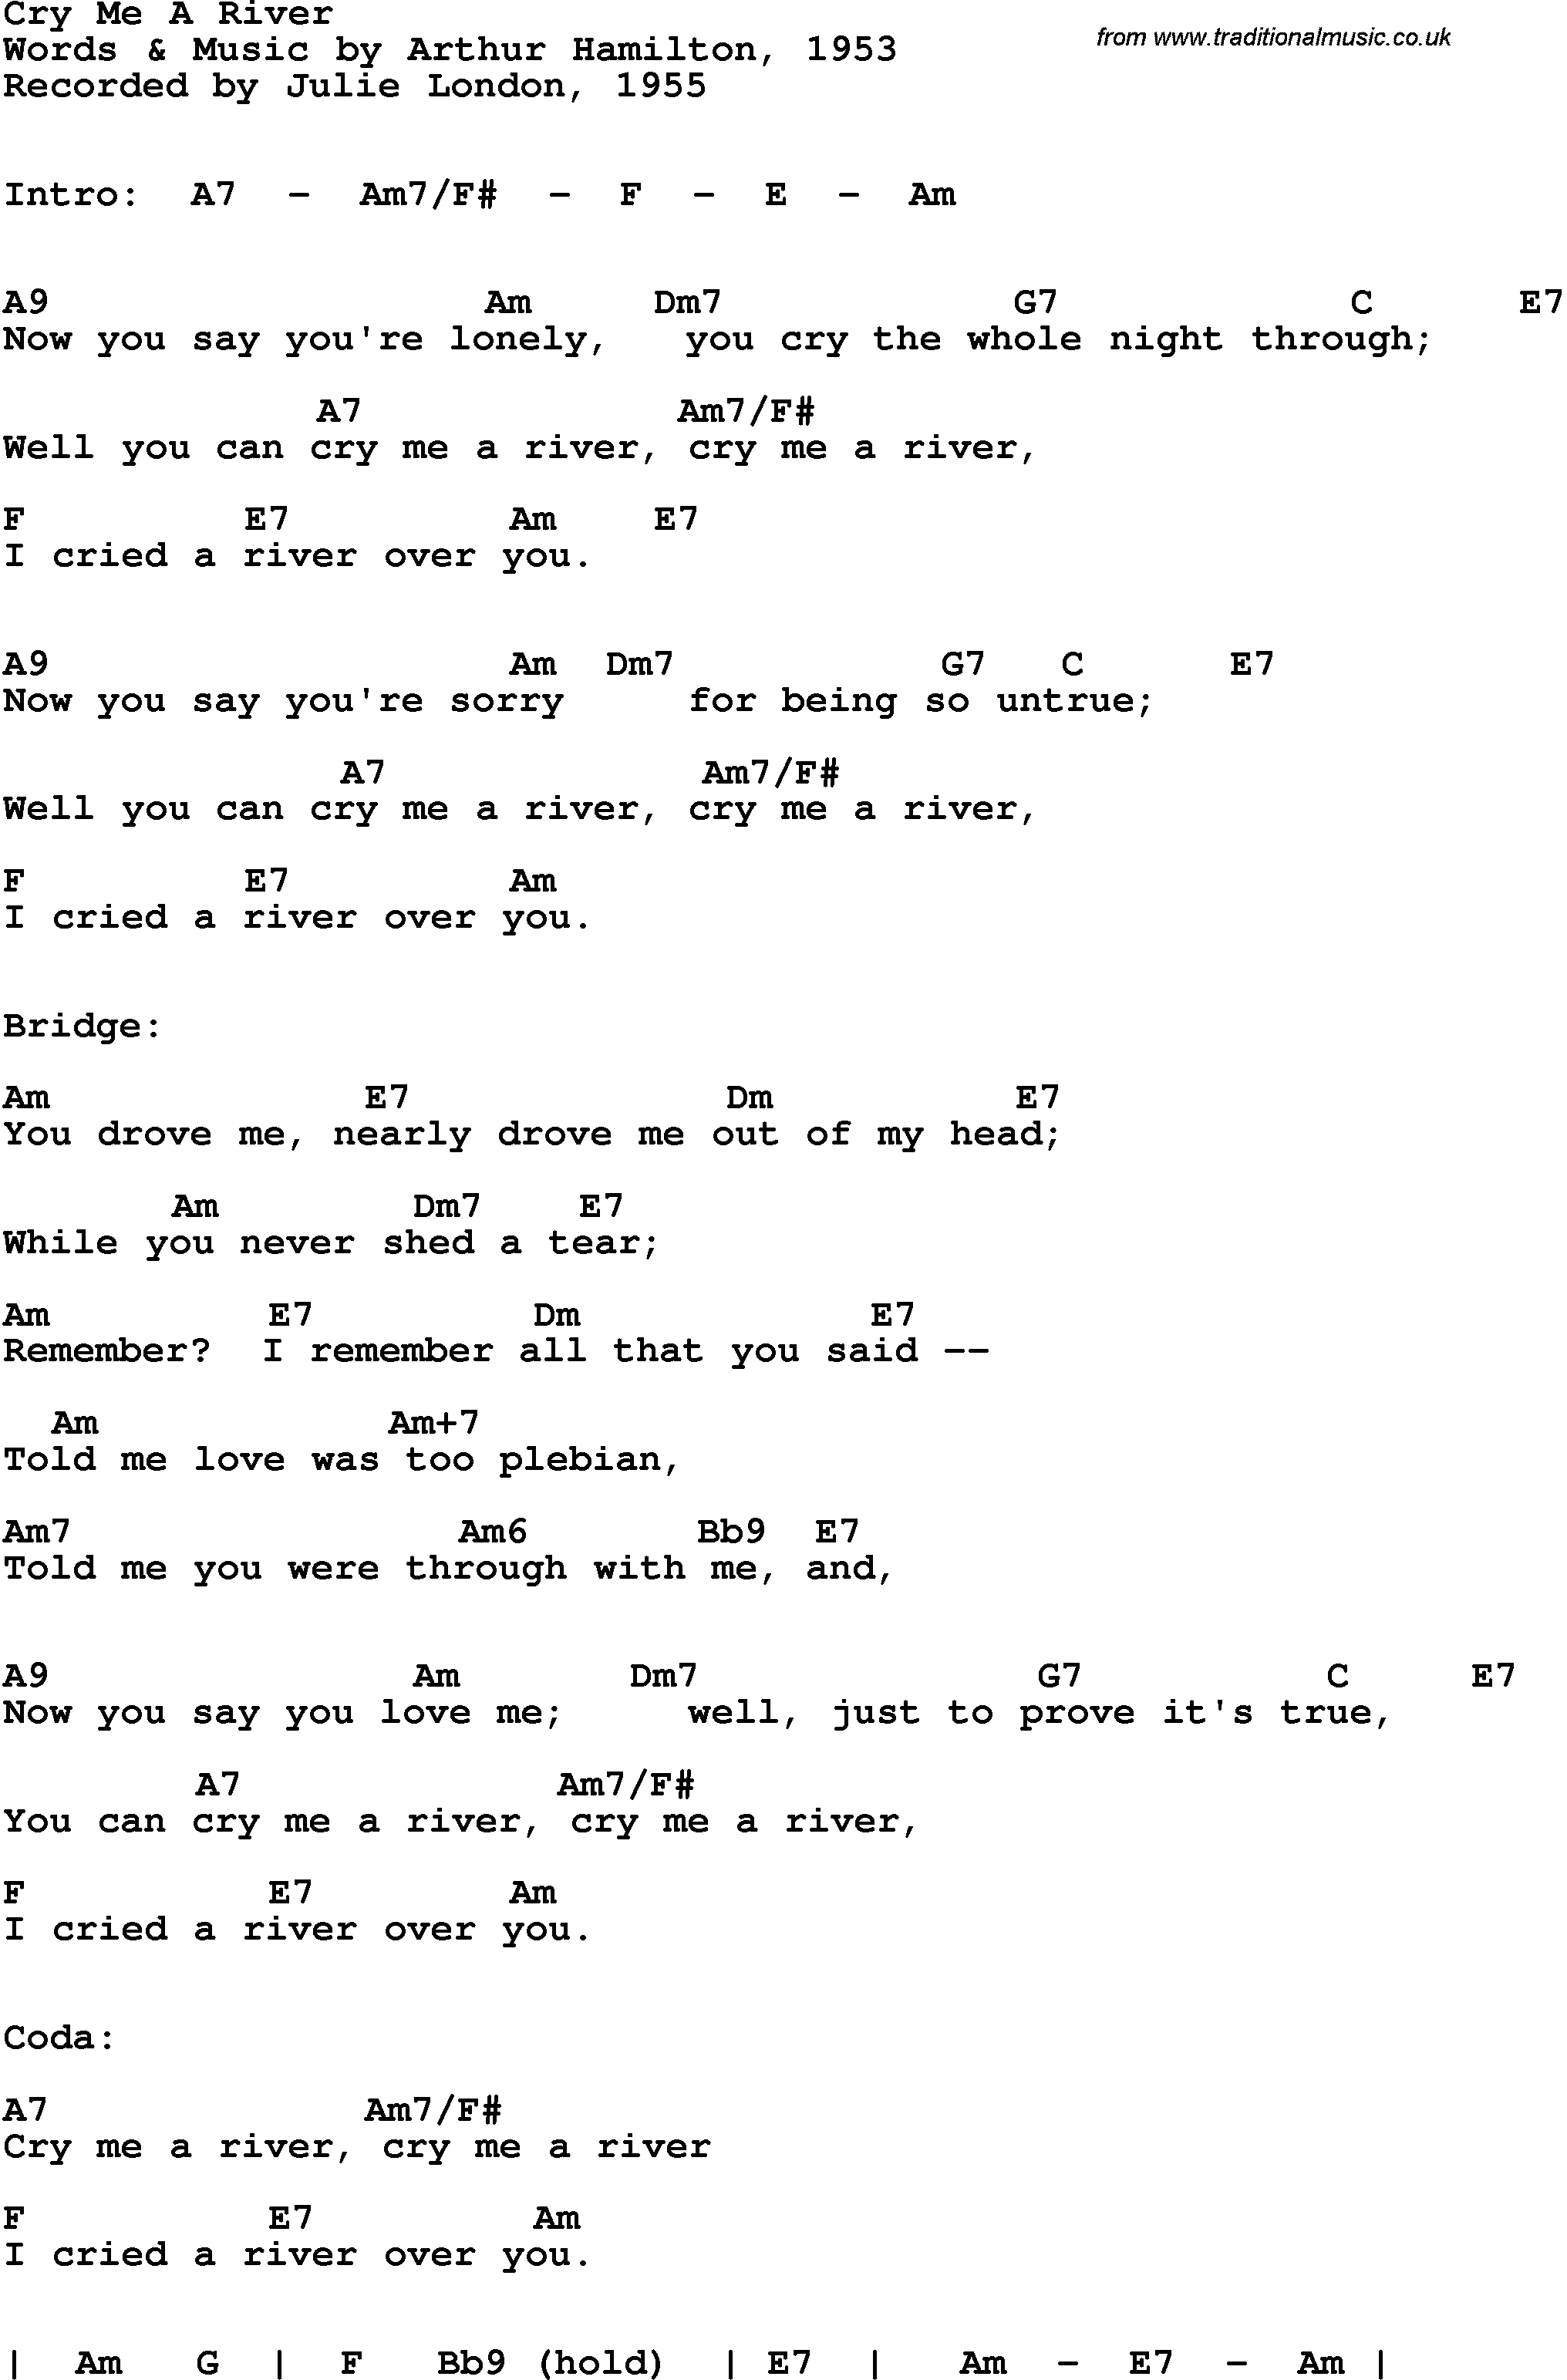 Song Lyrics With Guitar Chords For Cry Me A River Julie London 1955